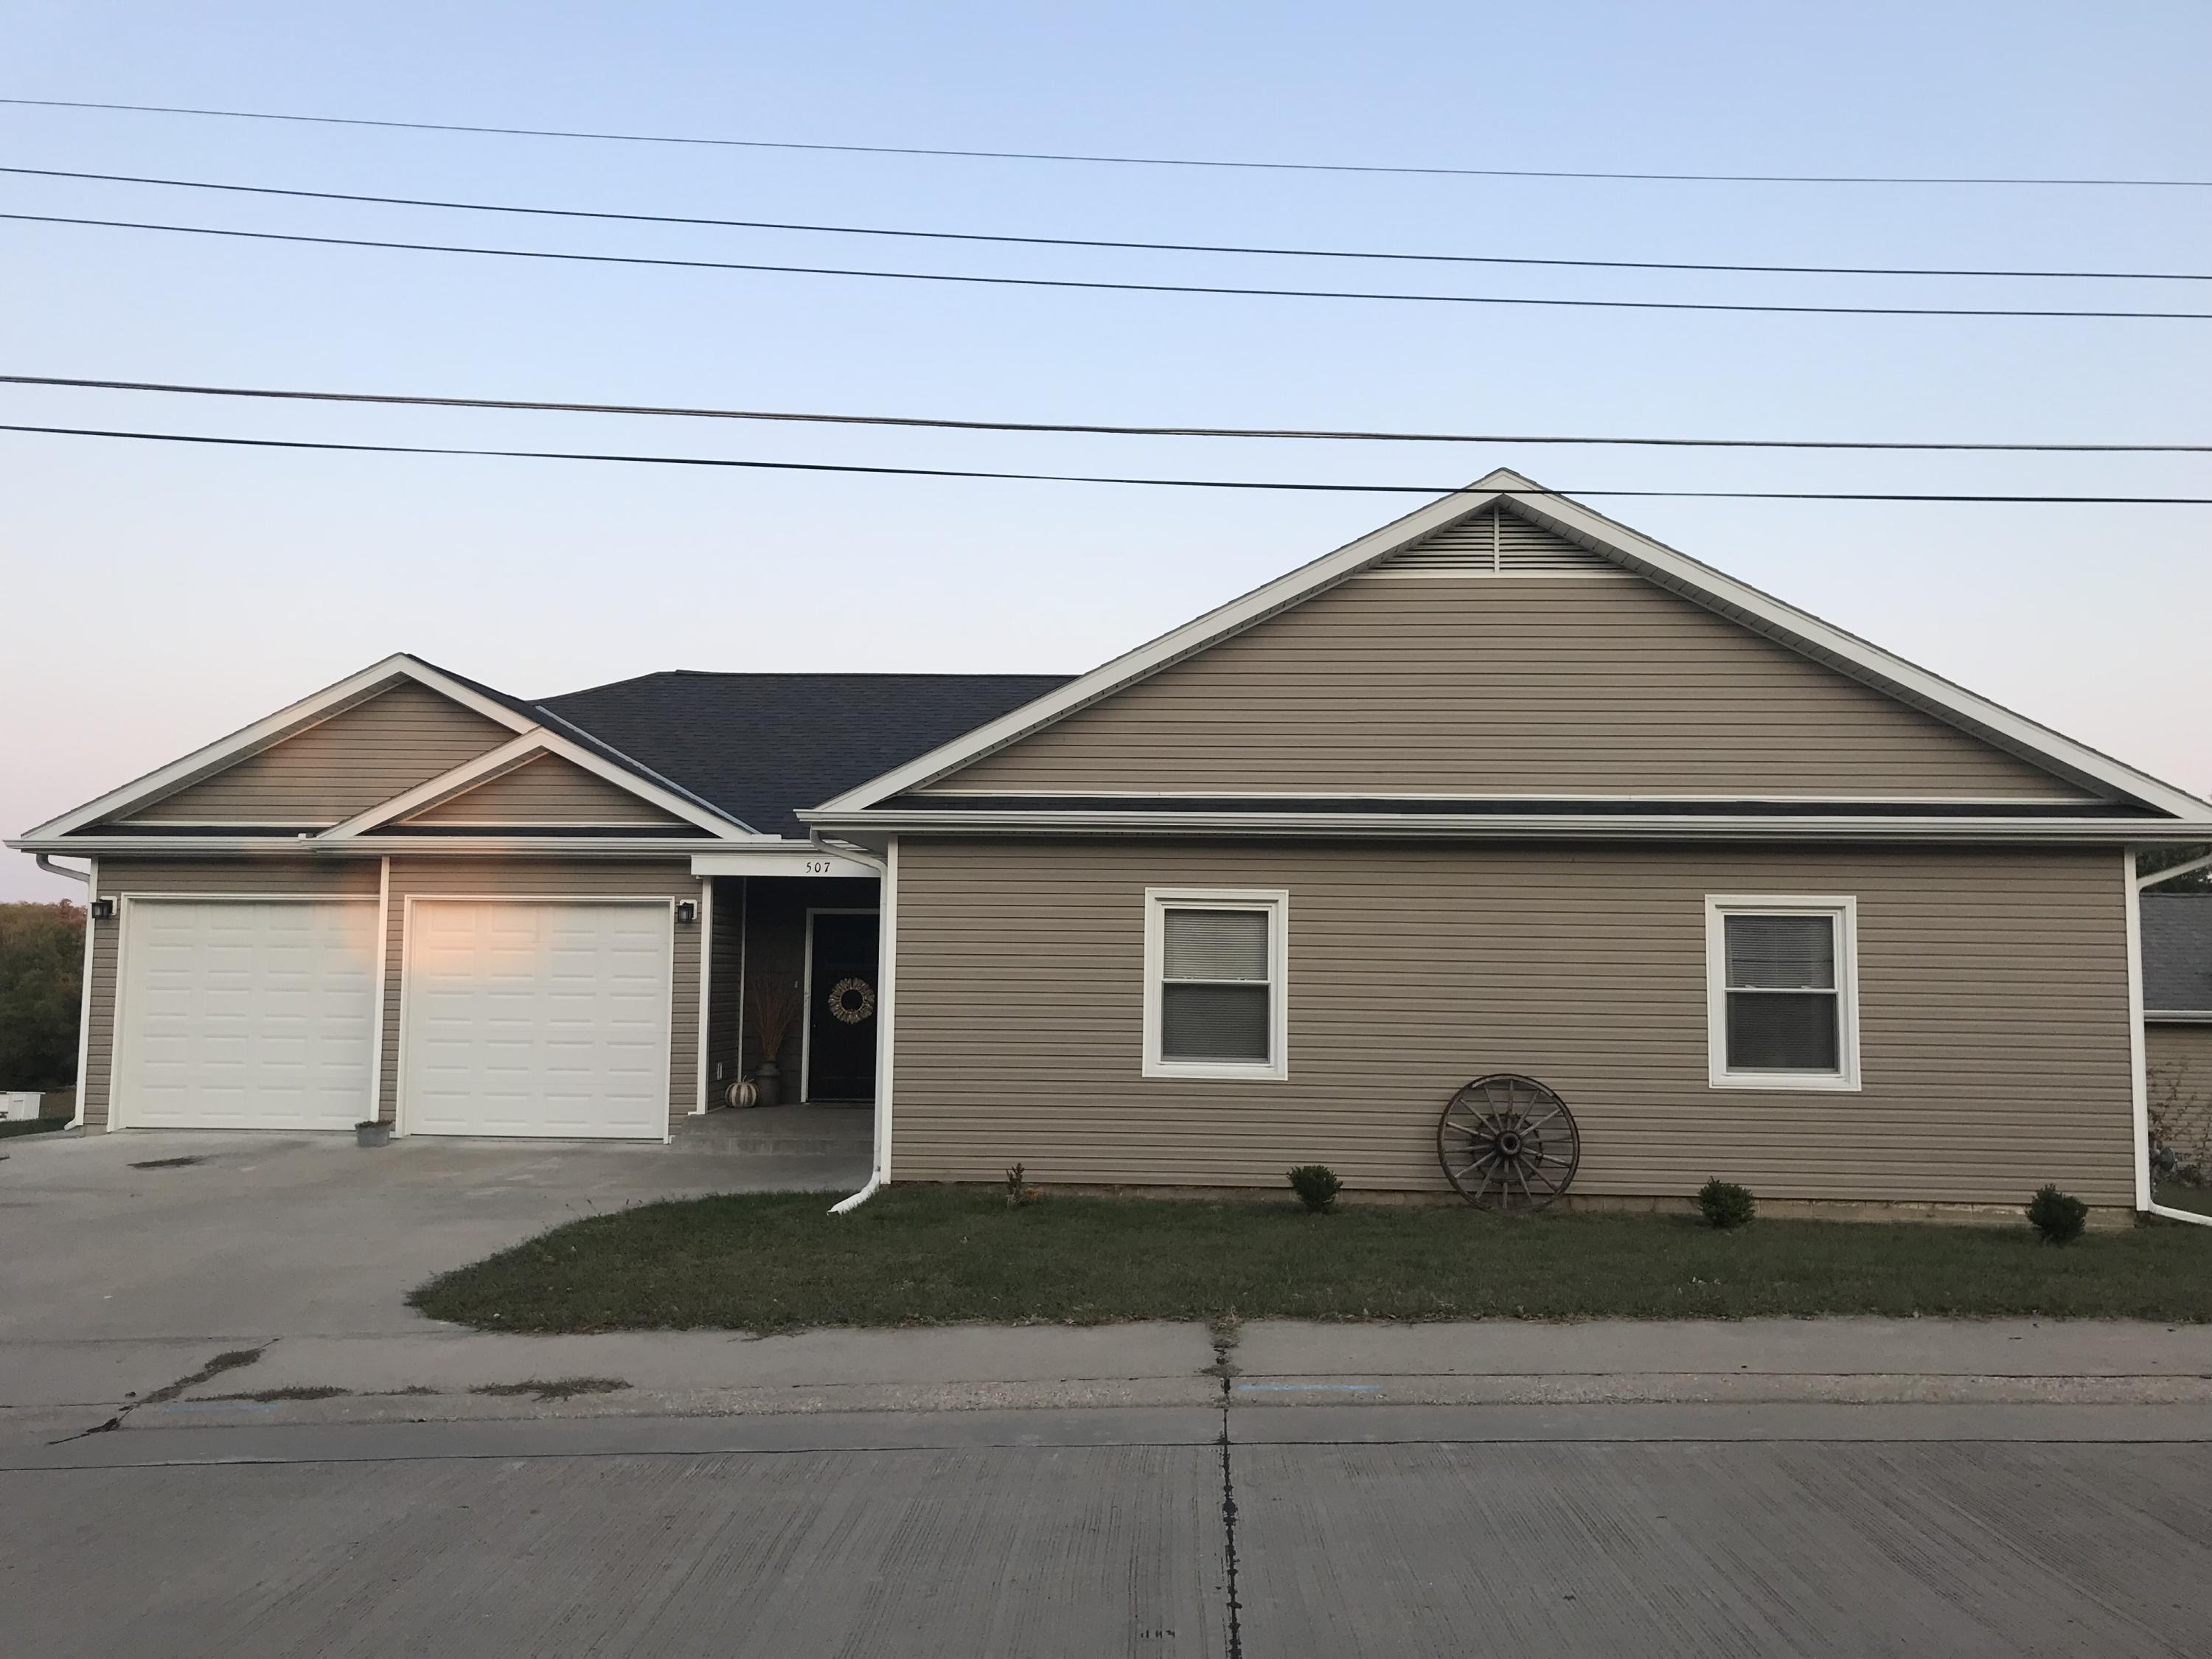 507 WATER Street, Maryville, Missouri 64468, 5 Bedrooms Bedrooms, ,2.5 BathroomsBathrooms,Residential,WATER,4910